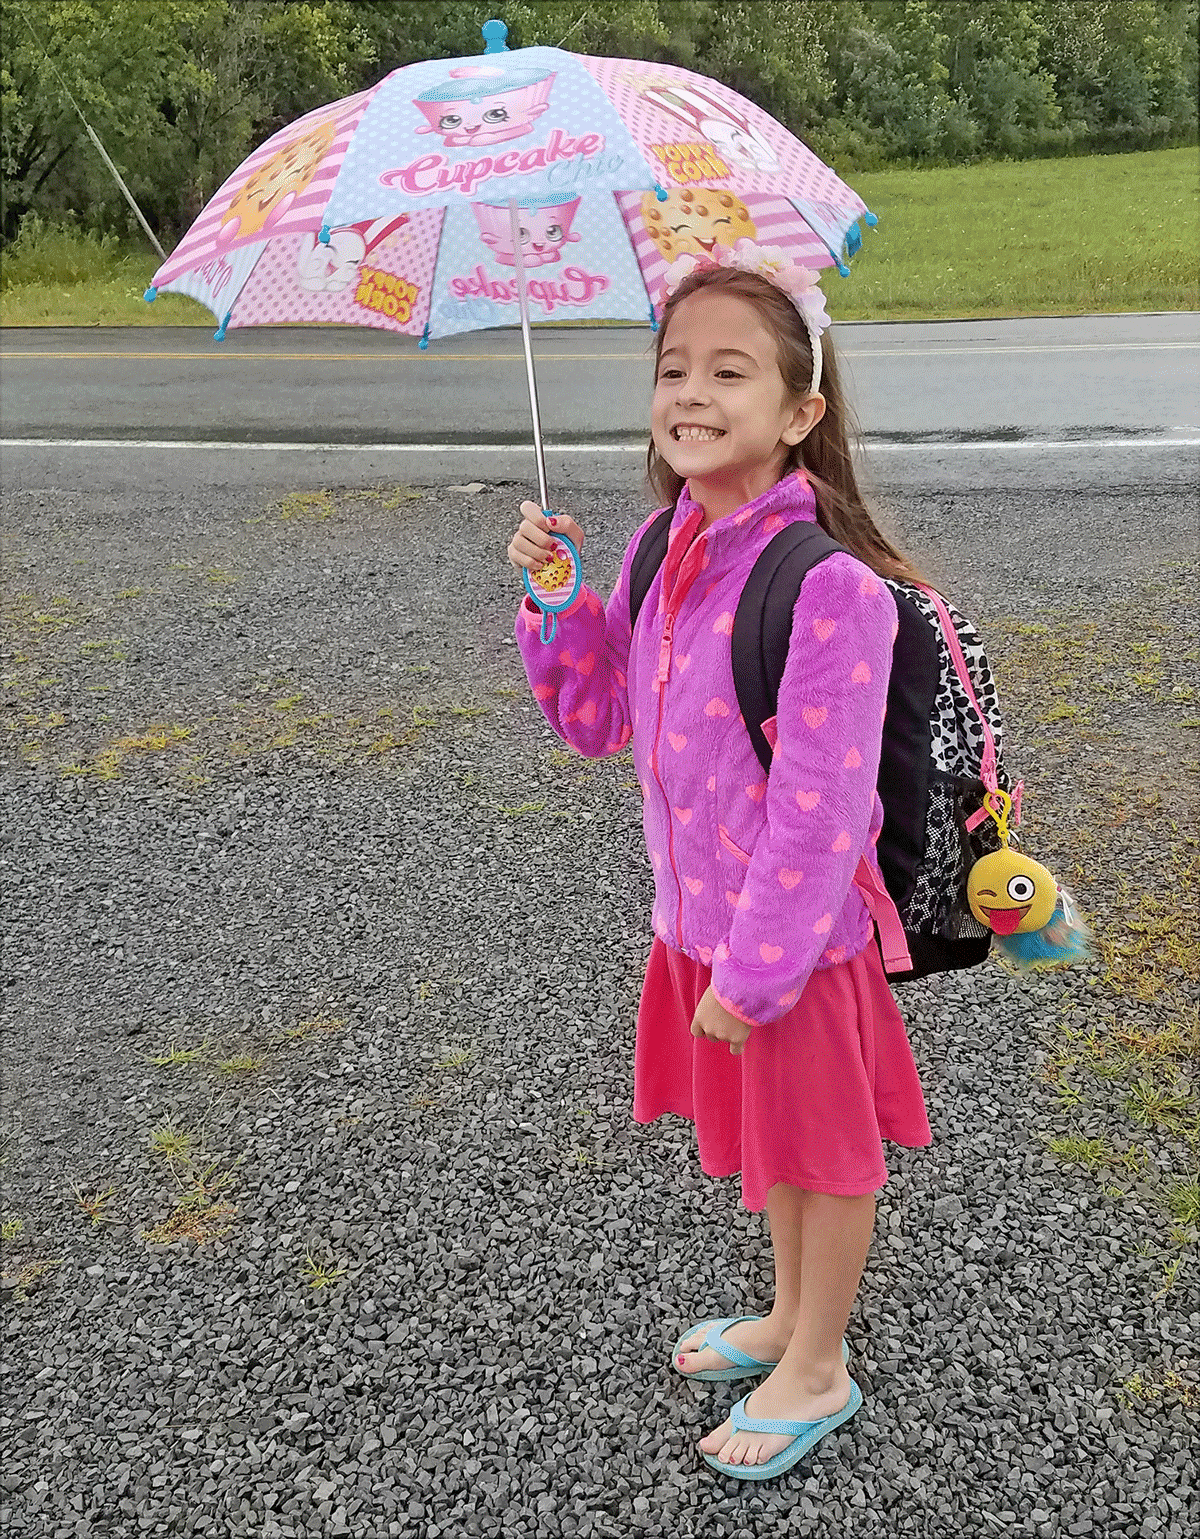 Marah, Winthrop, awaits the bus on the rainy first day of school. Photo submitted by Kayla Fiacco.